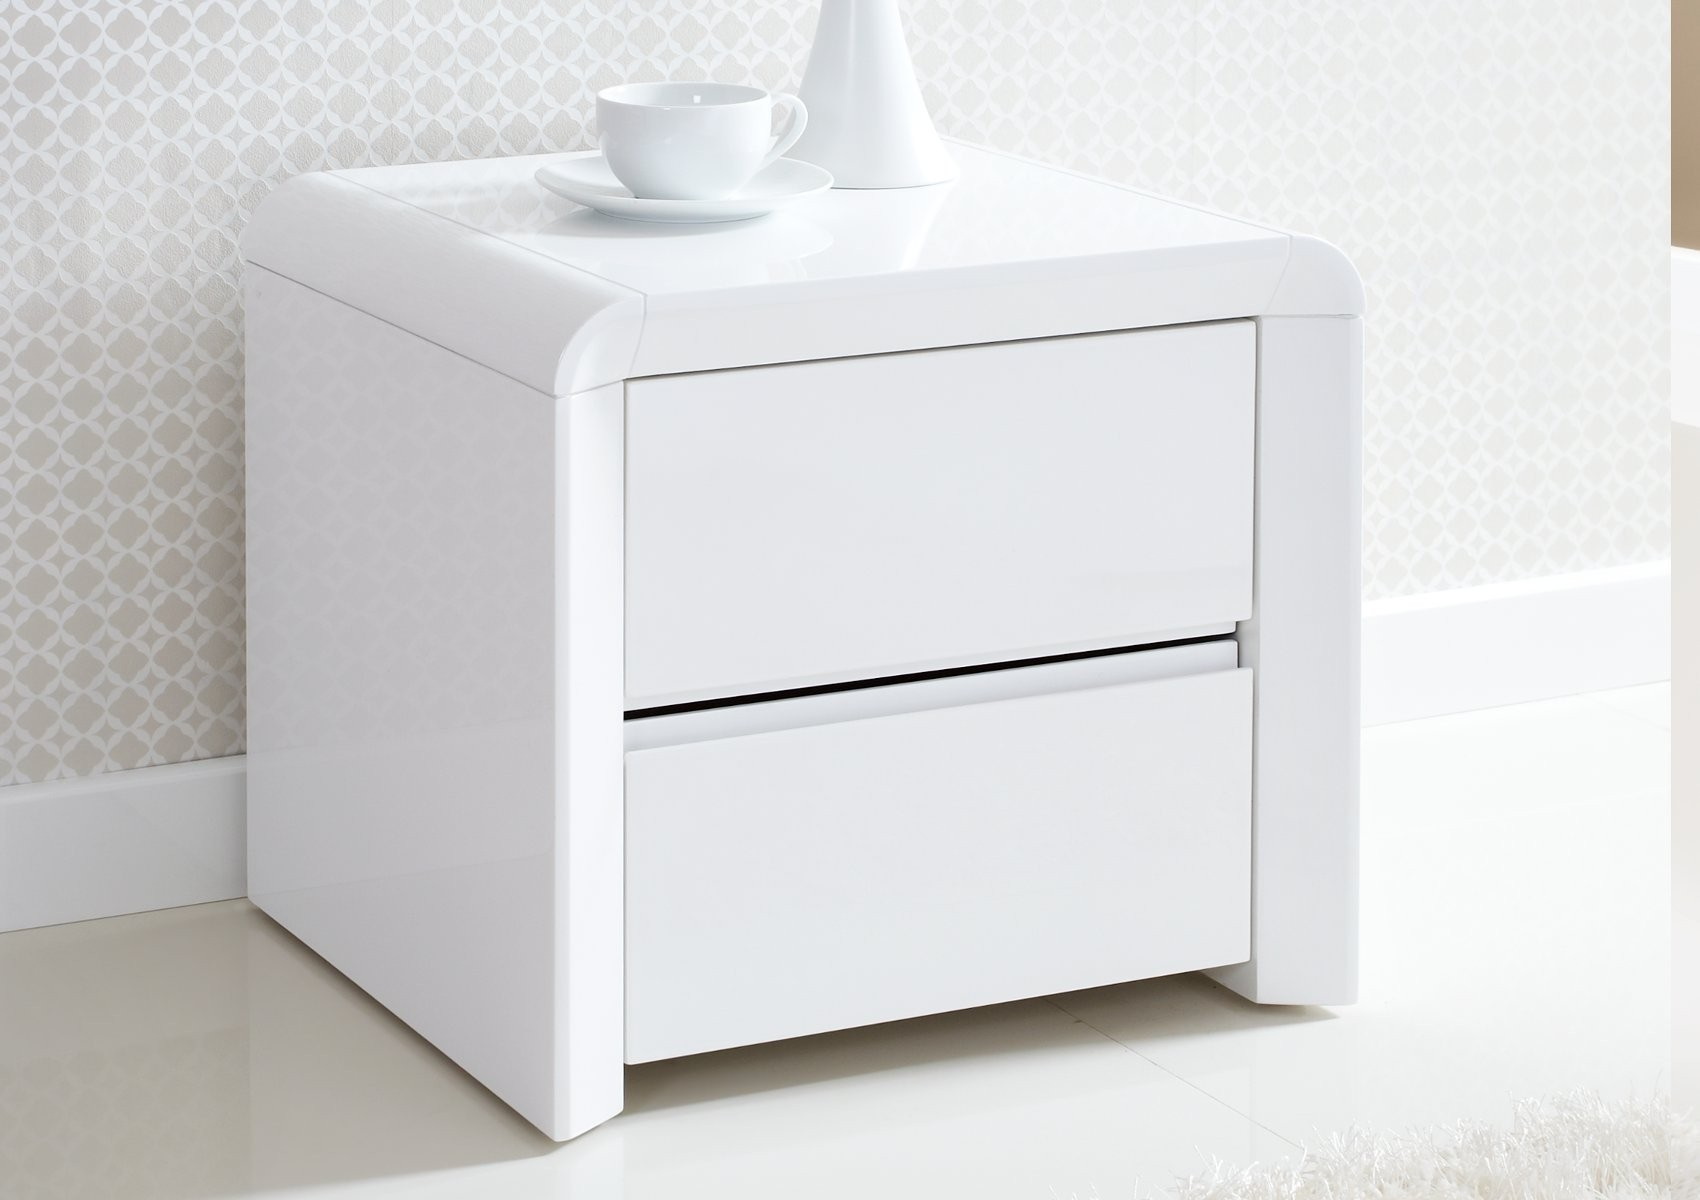 Bedside Tables Modern | Modern Bedside Tables | Cb2 Headboard